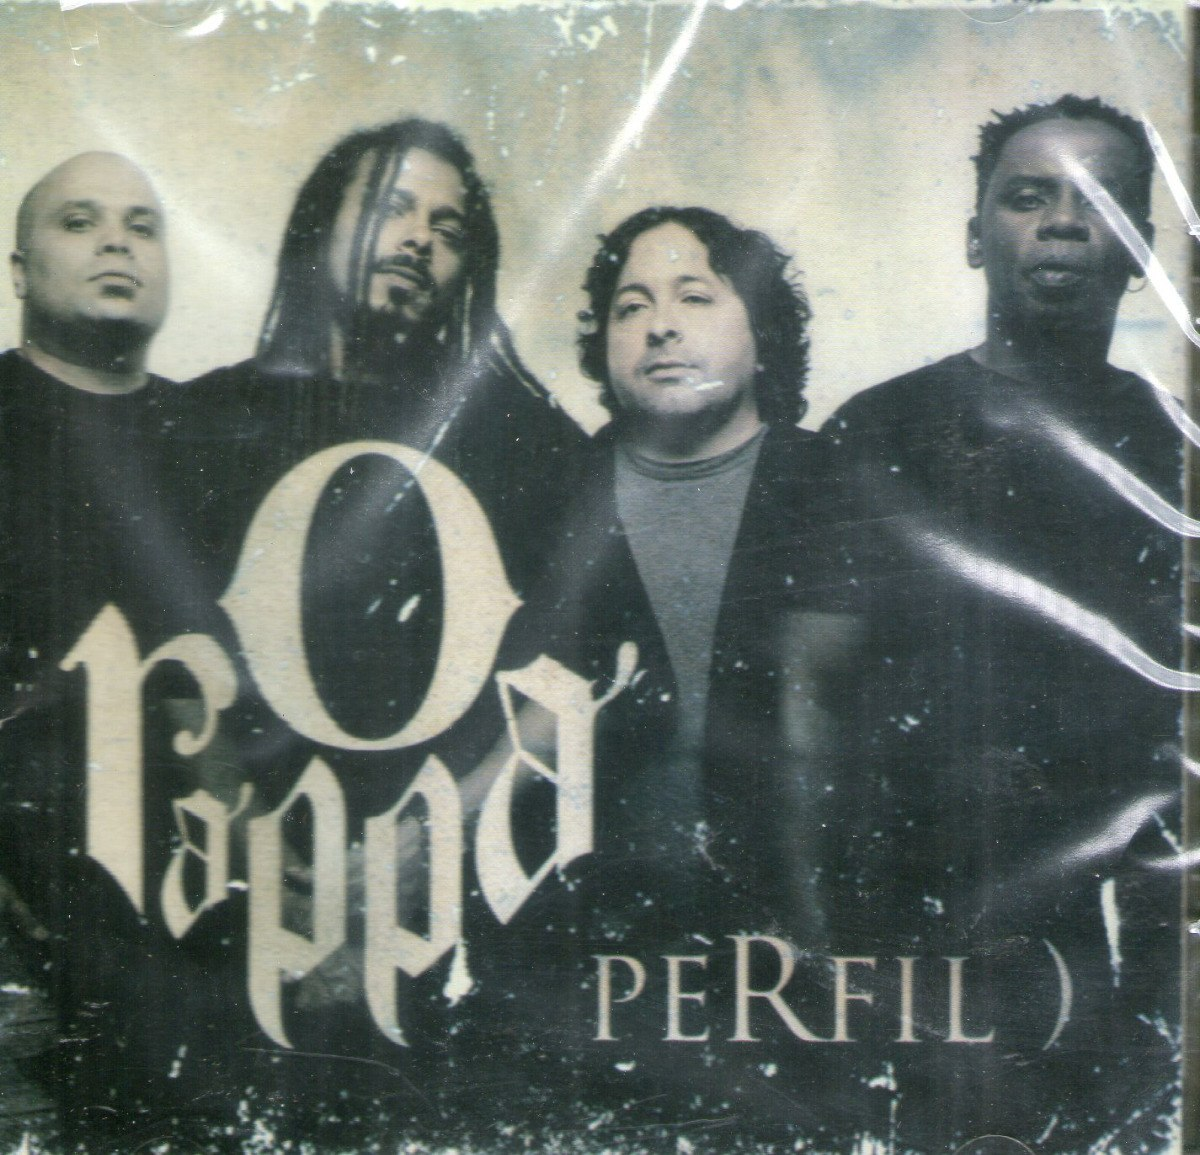 cd do rappa perfil